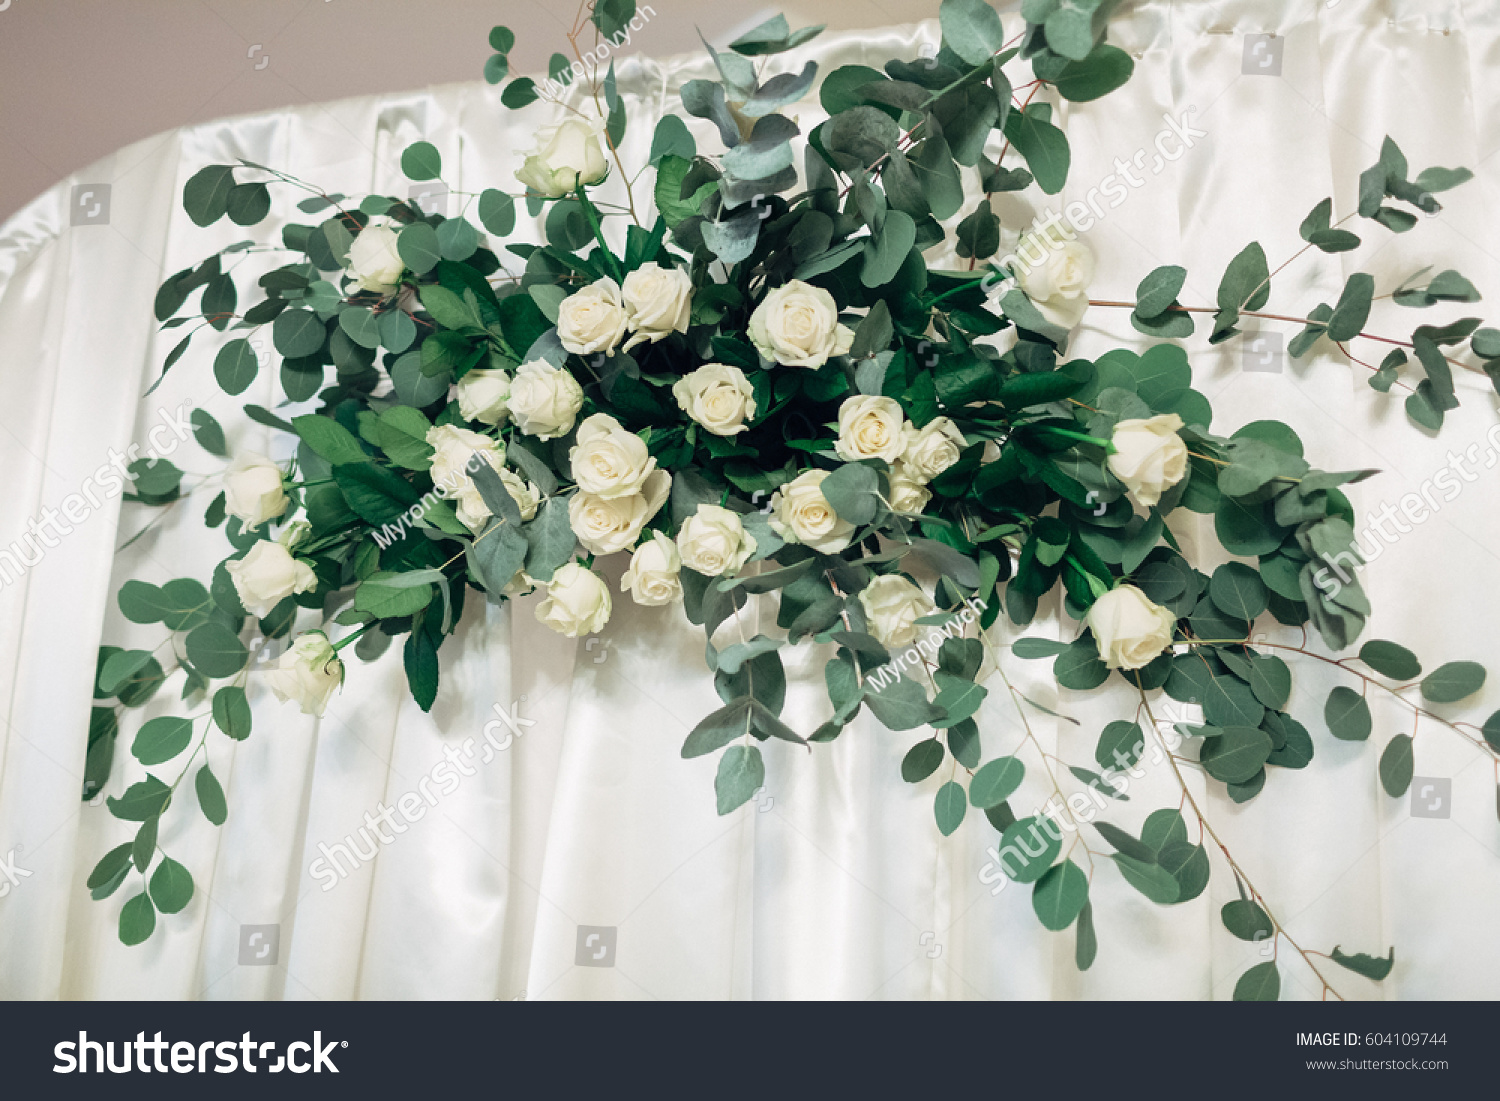 Bouquet of white roses and long green branches stands on little id 604109744 izmirmasajfo